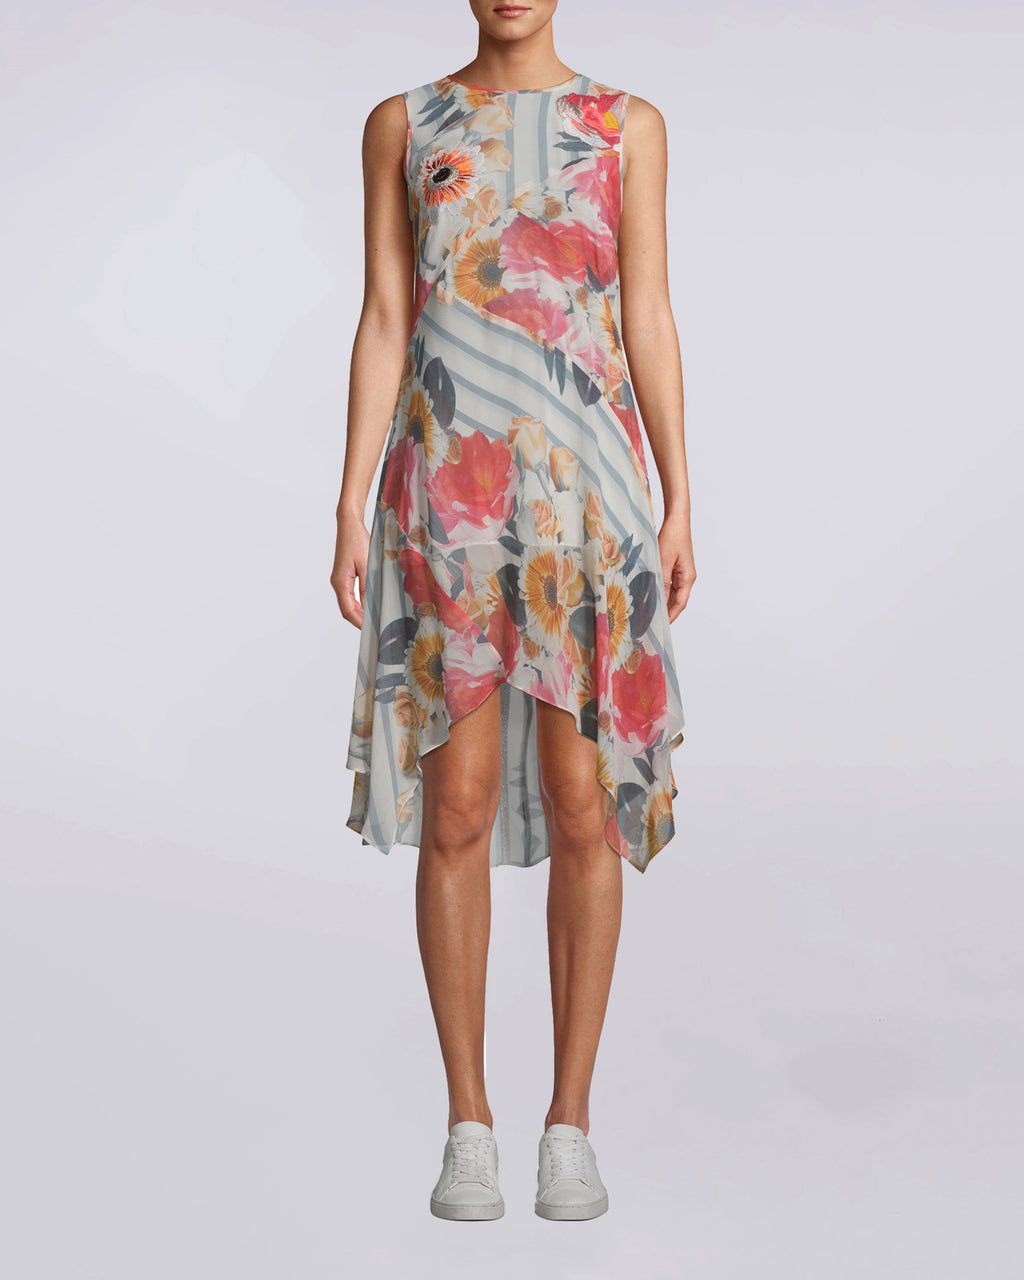 ccec207eda CS10007 - Embroidered Floral Stripe Handkerchief Dress - dresses - long -  Optimum for any summer ...